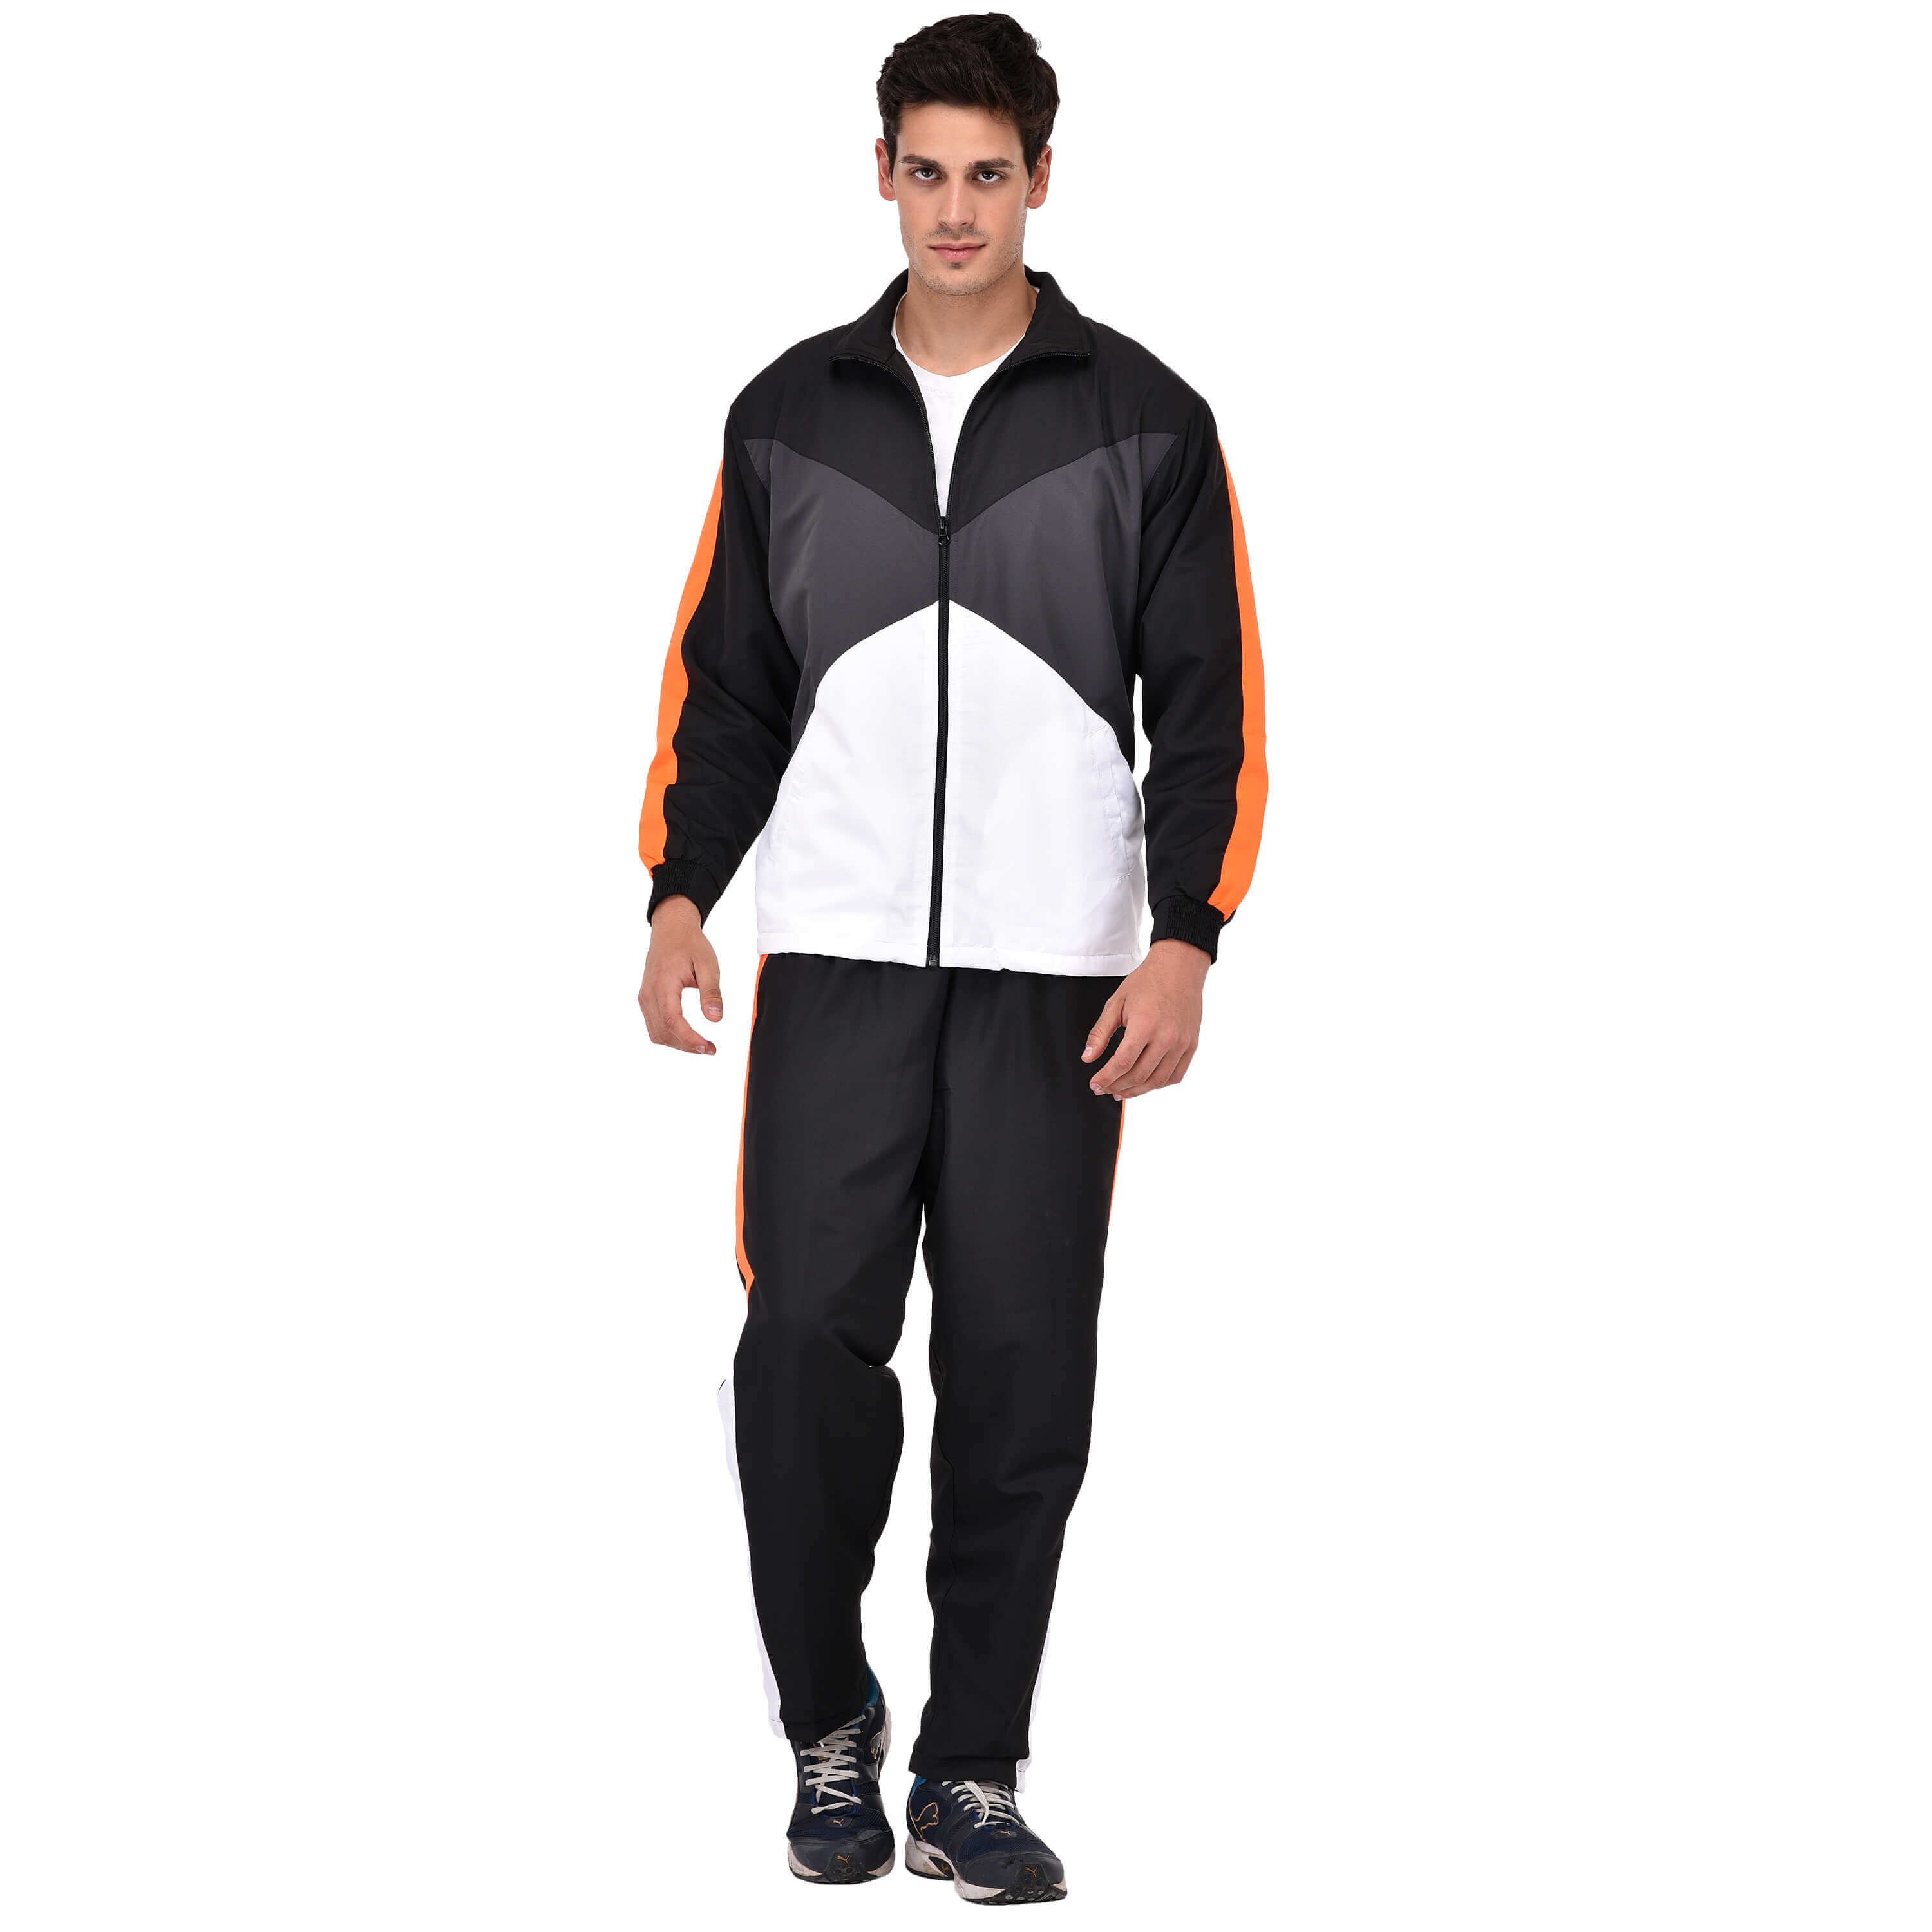 Sports Tracksuit Manufacturers in United-states-of-america